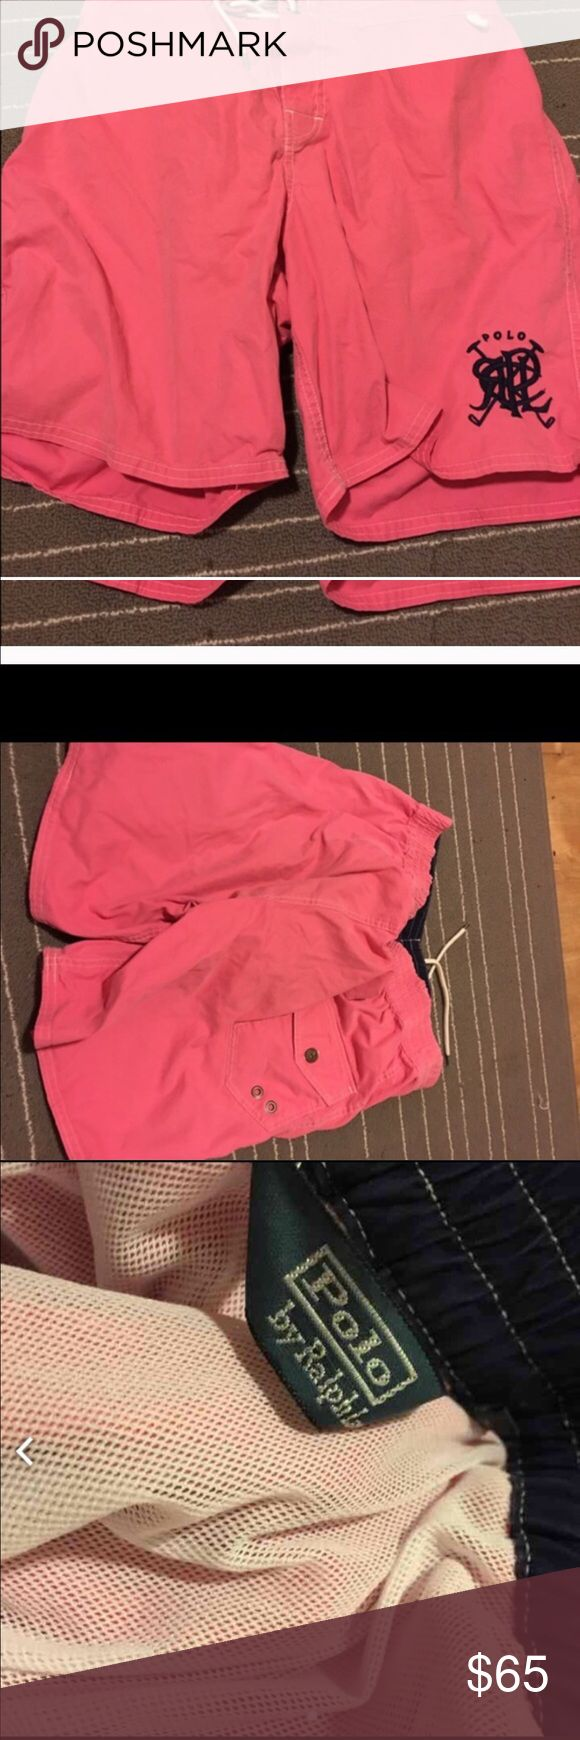 4 for $25💕PoloRalph Lauren swim shorts Polo Ralph Lauren swim shorts size large. Shell cotton/nylon lining polyester. Some elastic stretch in back top. Front ties and velcros. These are mens. Has polo logo on front. Pinkish color shorts. Back has one pocket that buttons closed. Has inside little open pocket. Has underwear lining for swimming. No returns final sale Polo by Ralph Lauren Swim Swim Trunks